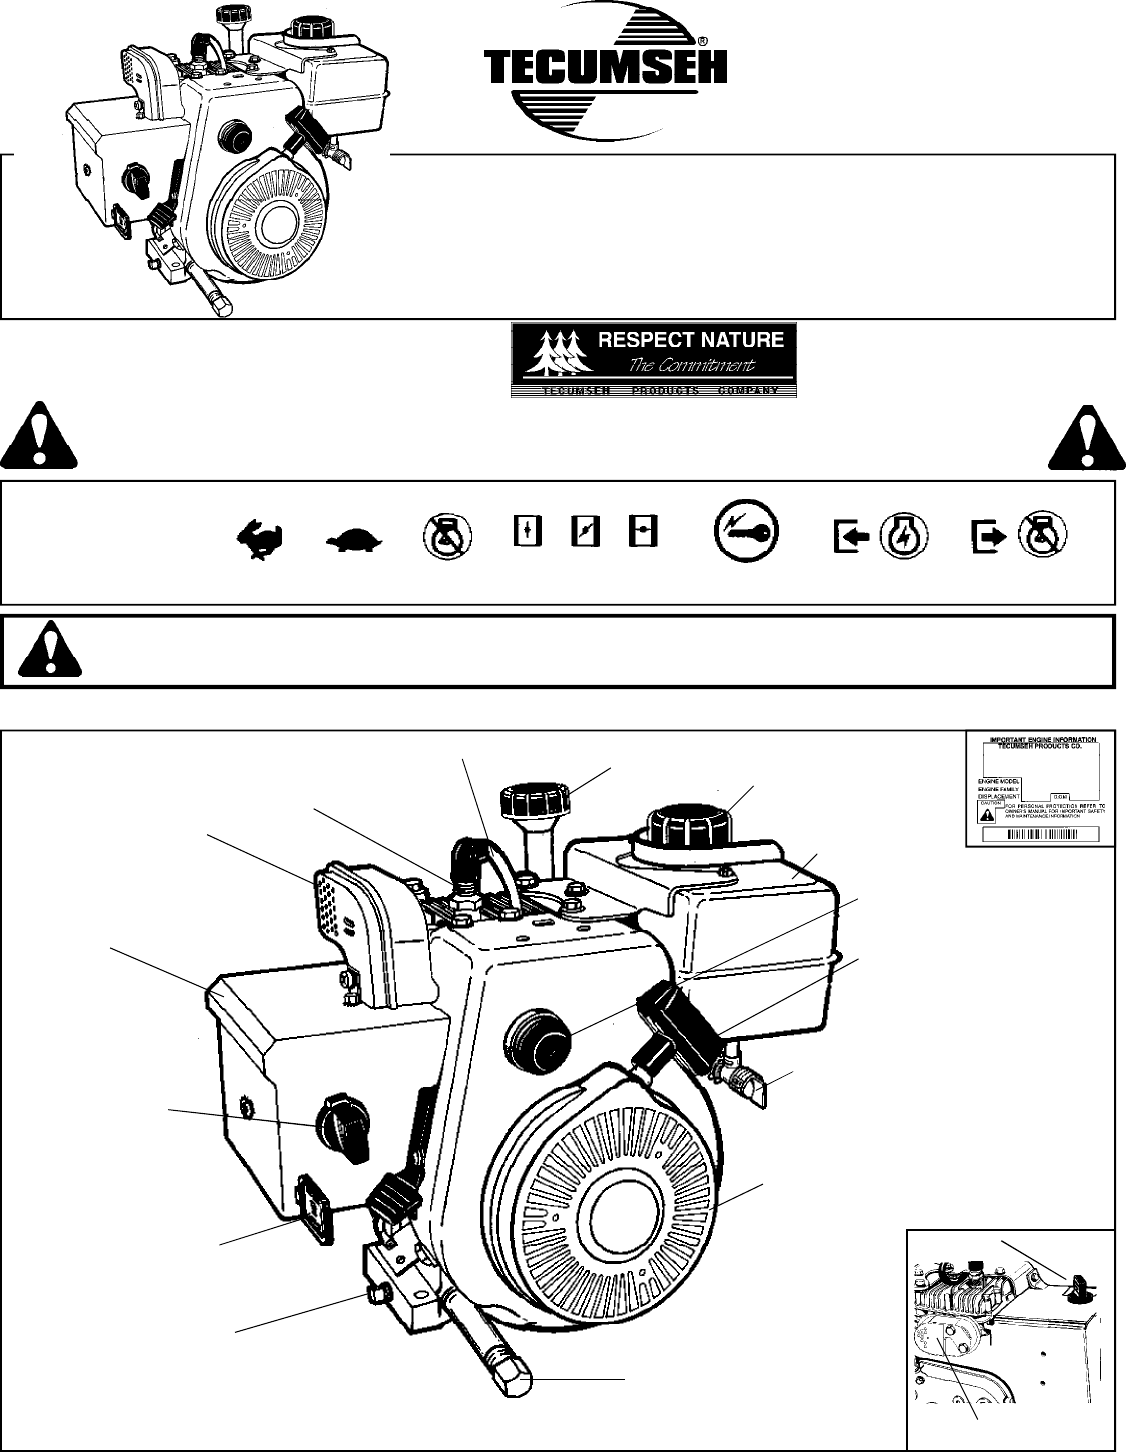 tecumseh snow blower hsk35 40 hssk50 user guide manualsonline com california proposition 65 warning the engine exhaust from this product contains chemicals